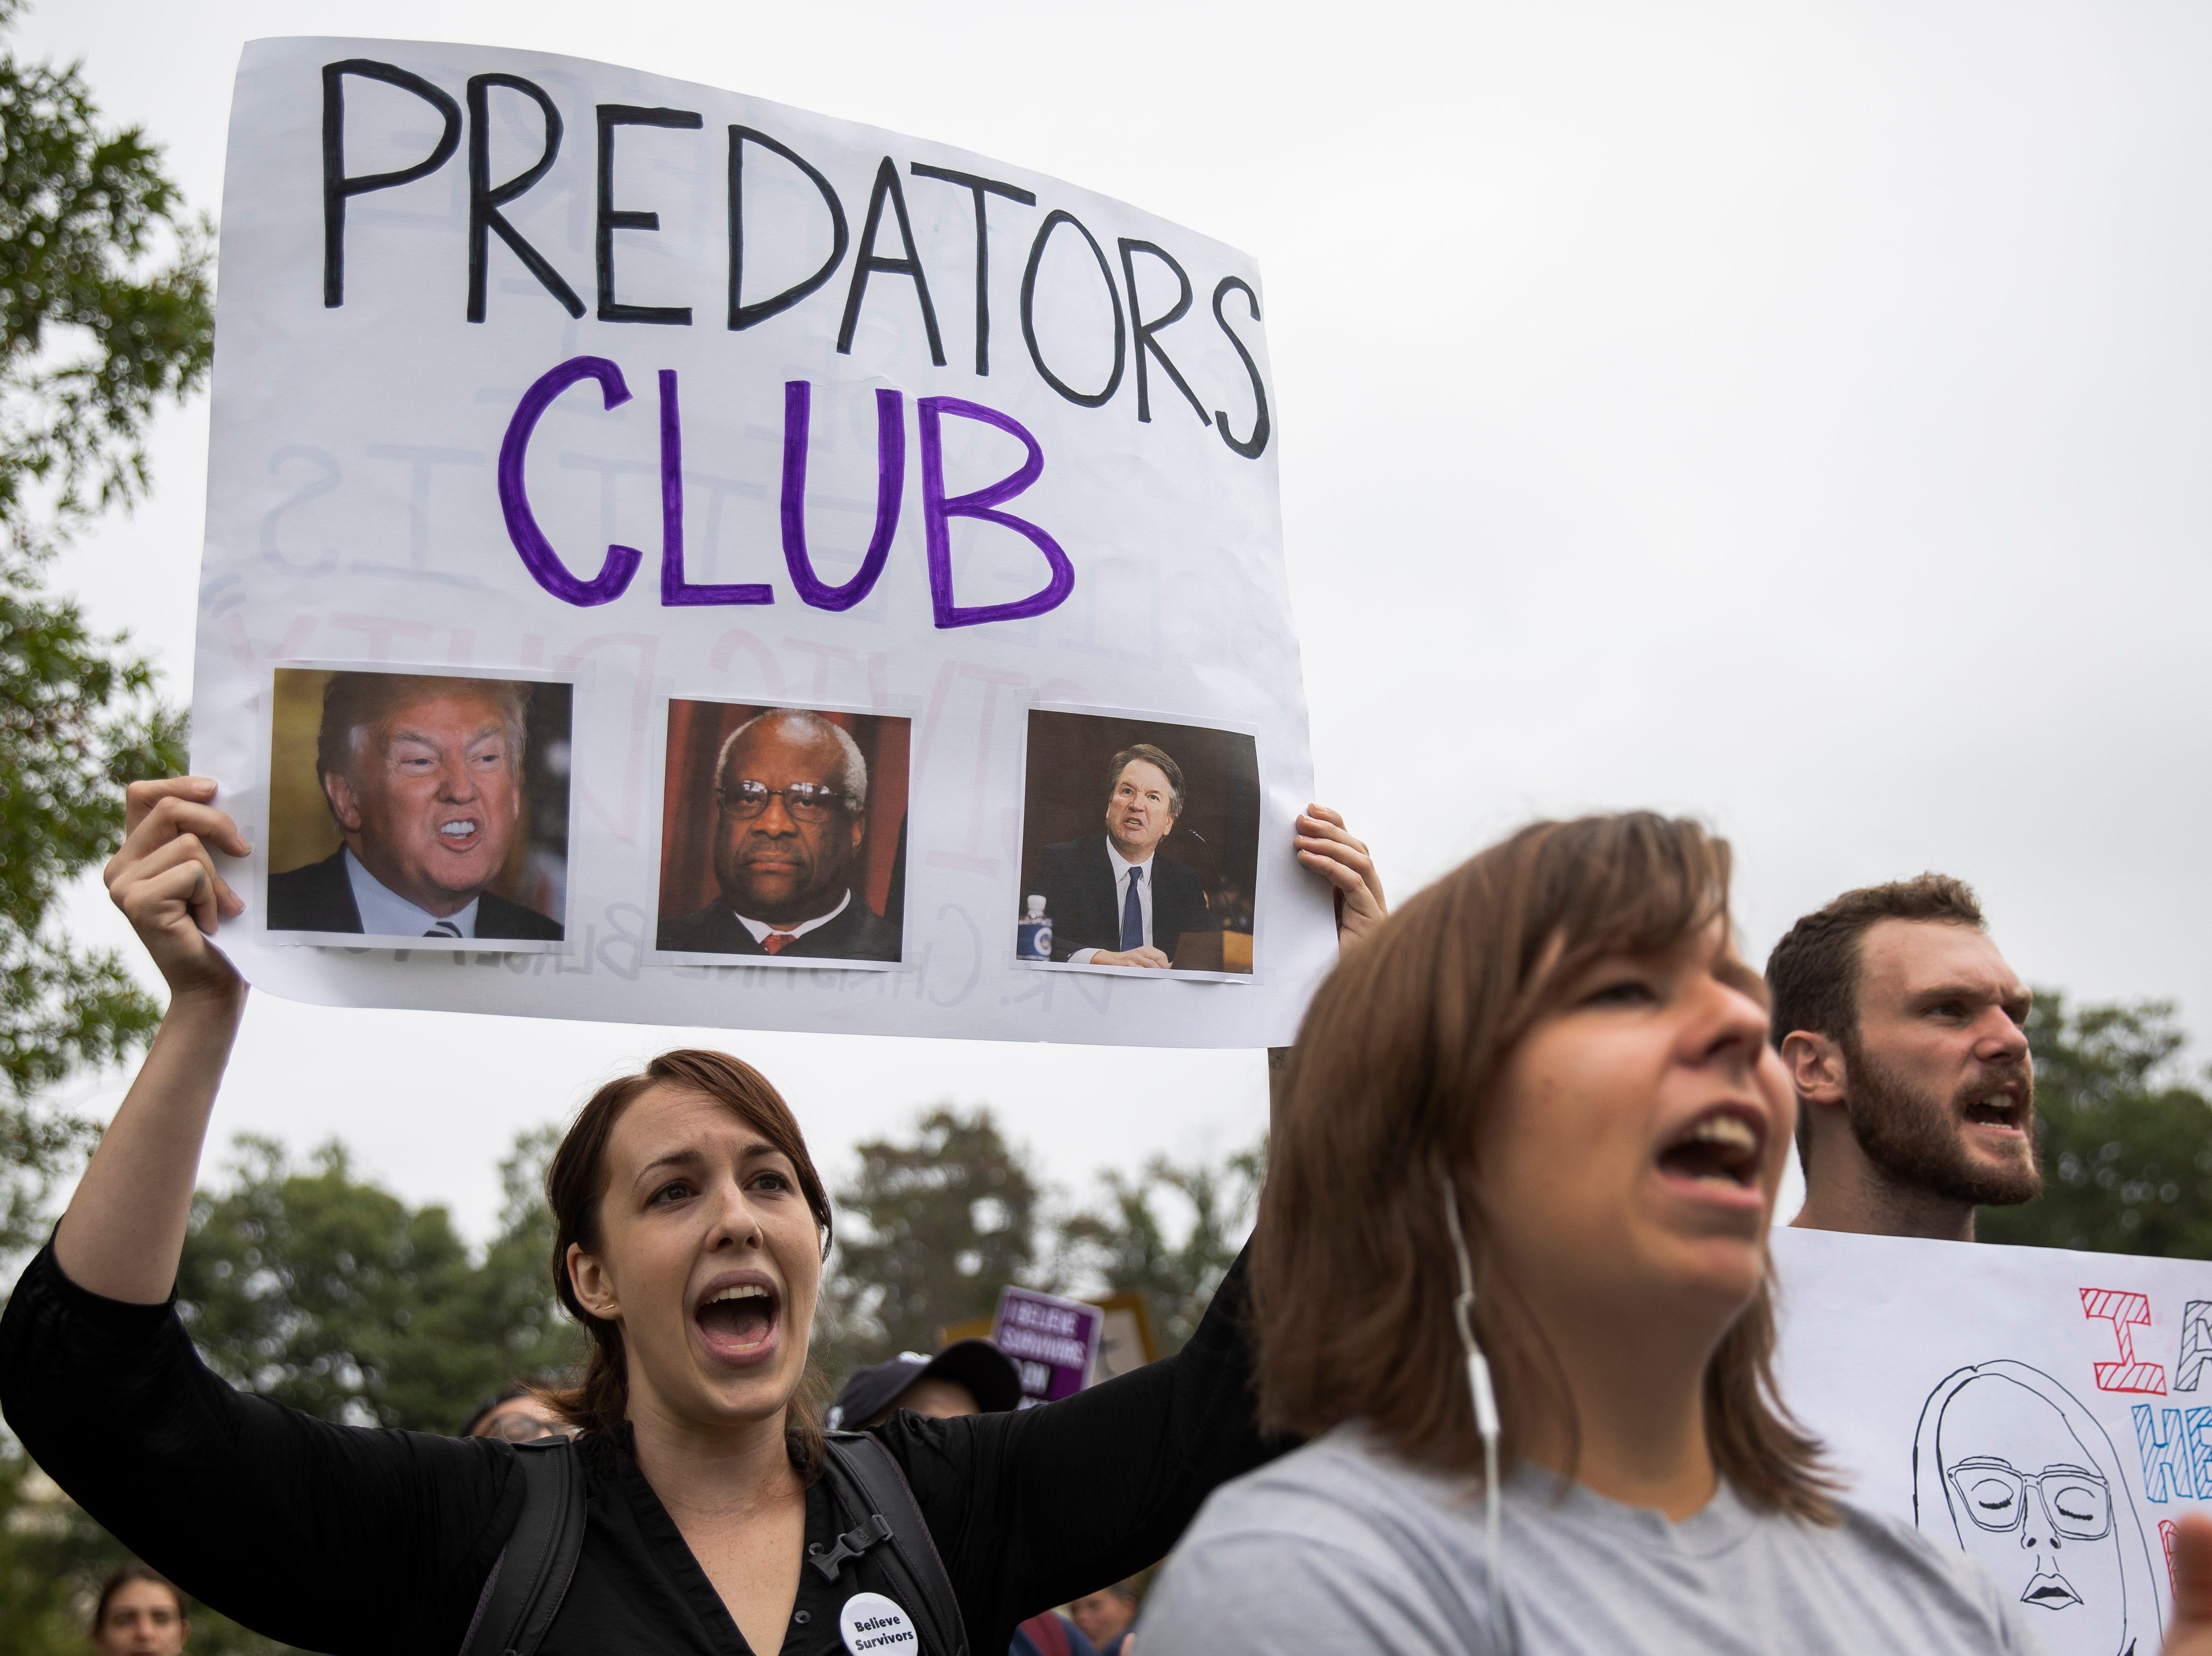 WASHINGTON, DC - OCTOBER 6: Protesters rally against the confirmation of Supreme Court nominee Judge Brett Kavanaugh, on Capitol Hill, October 6, 2018 in Washington, DC. The Senate is set to hold a final vote Saturday evening to confirm the nomination of Judge Brett Kavanaugh to the U.S. Supreme Court. (Photo by Drew Angerer/Getty Images)